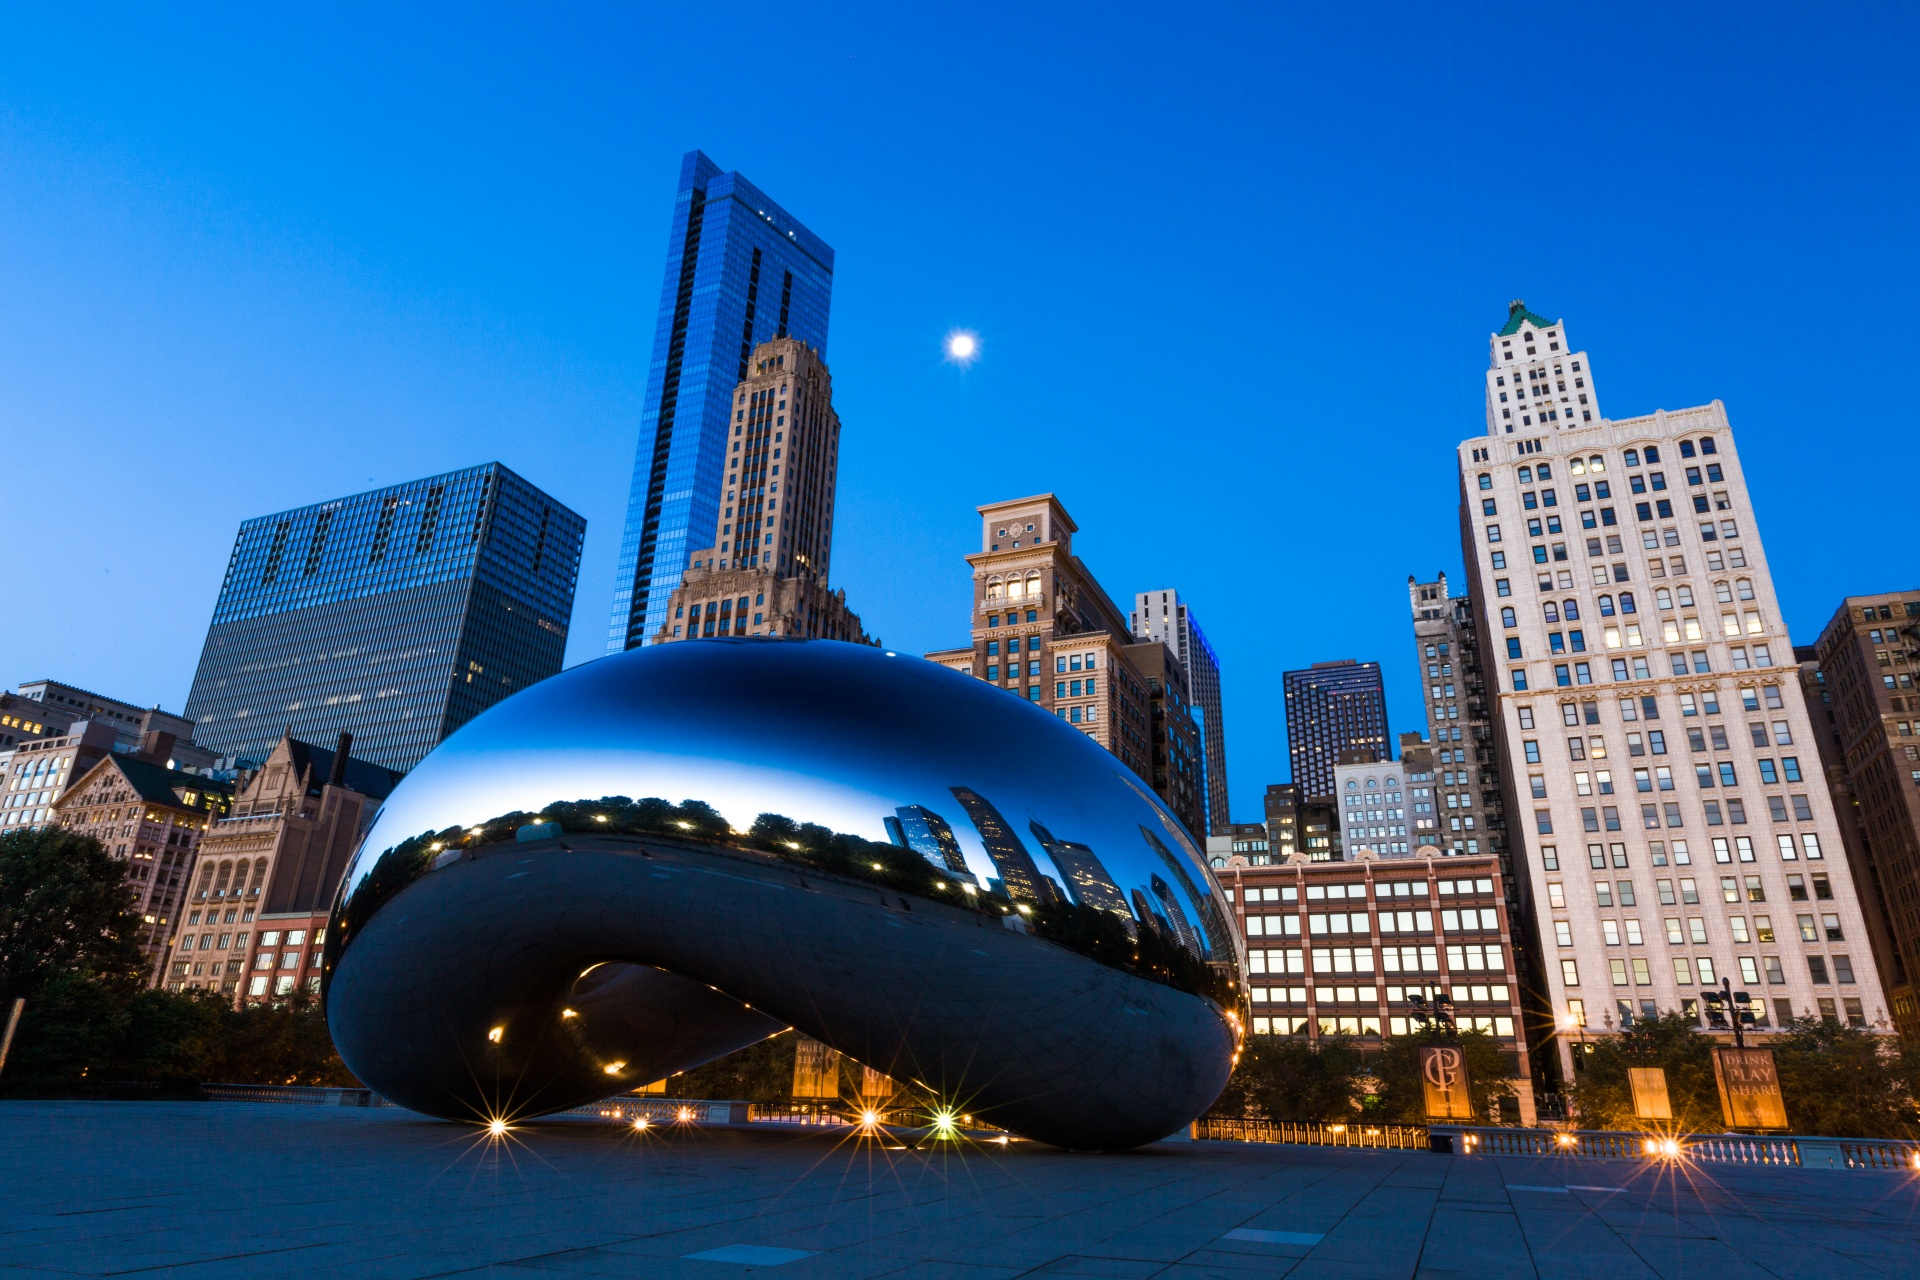 architecture art chicago chicago bean public domain image - FreeIMG